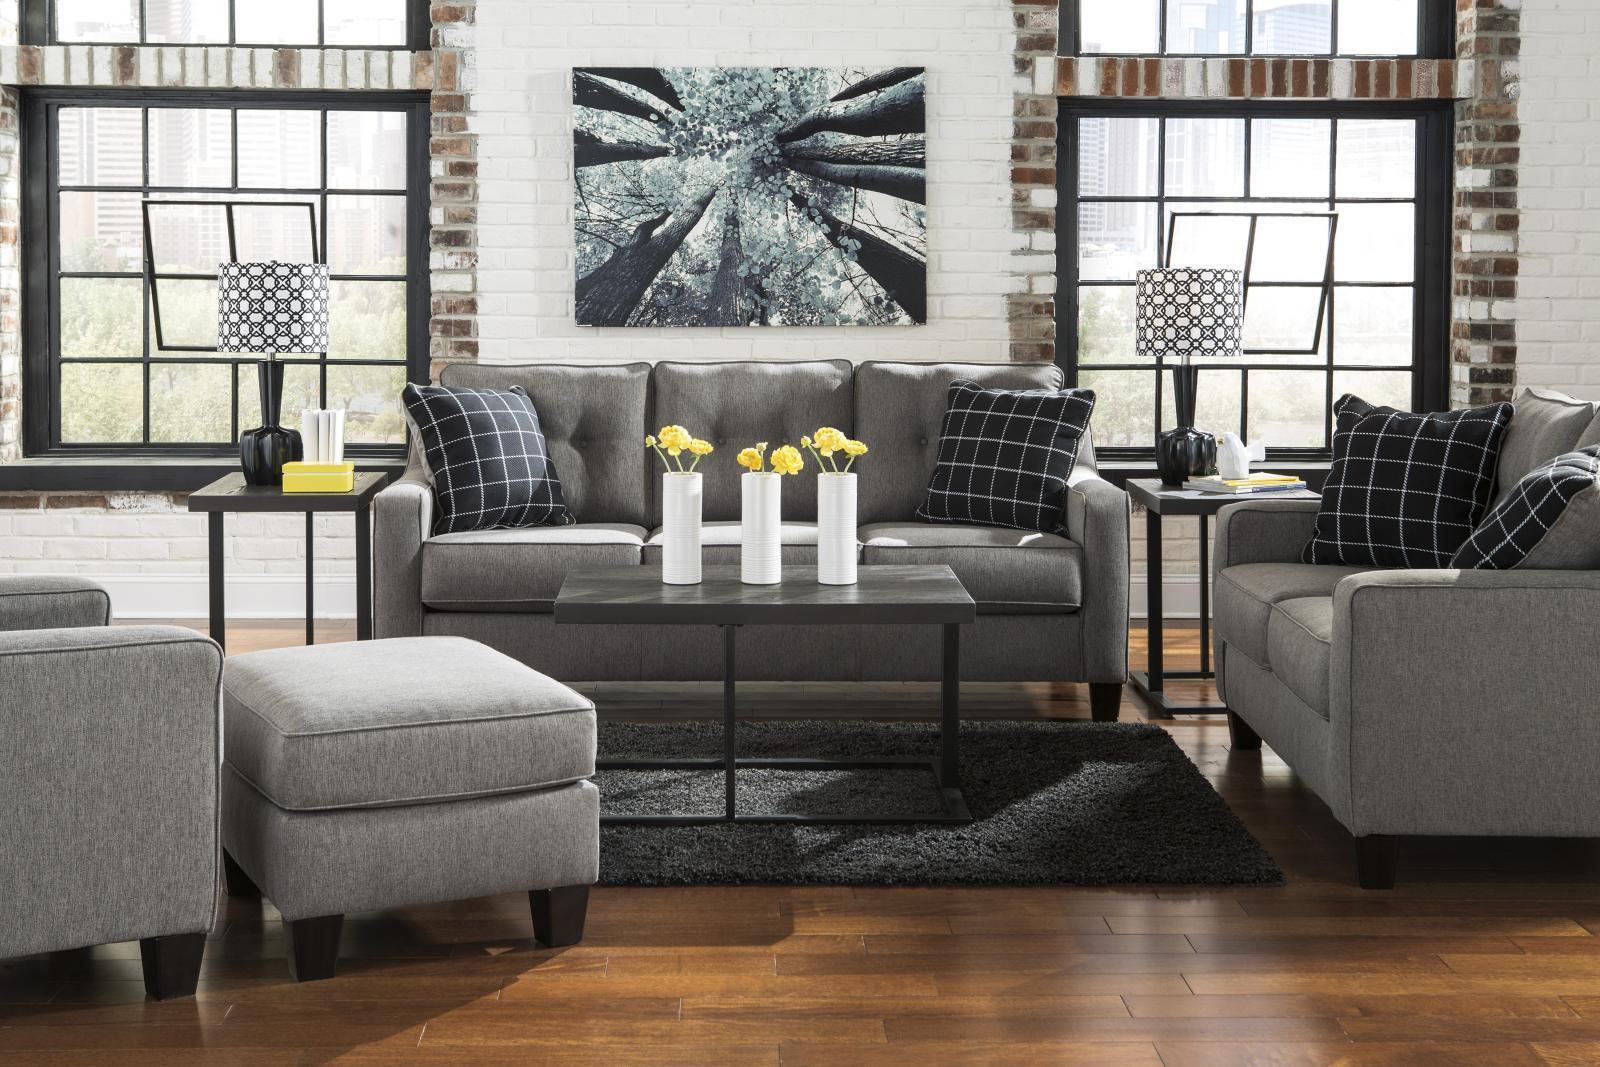 Ashley Brindon Living Room Set 4pcs in Charcoal Upholstery Fabric Contemporary